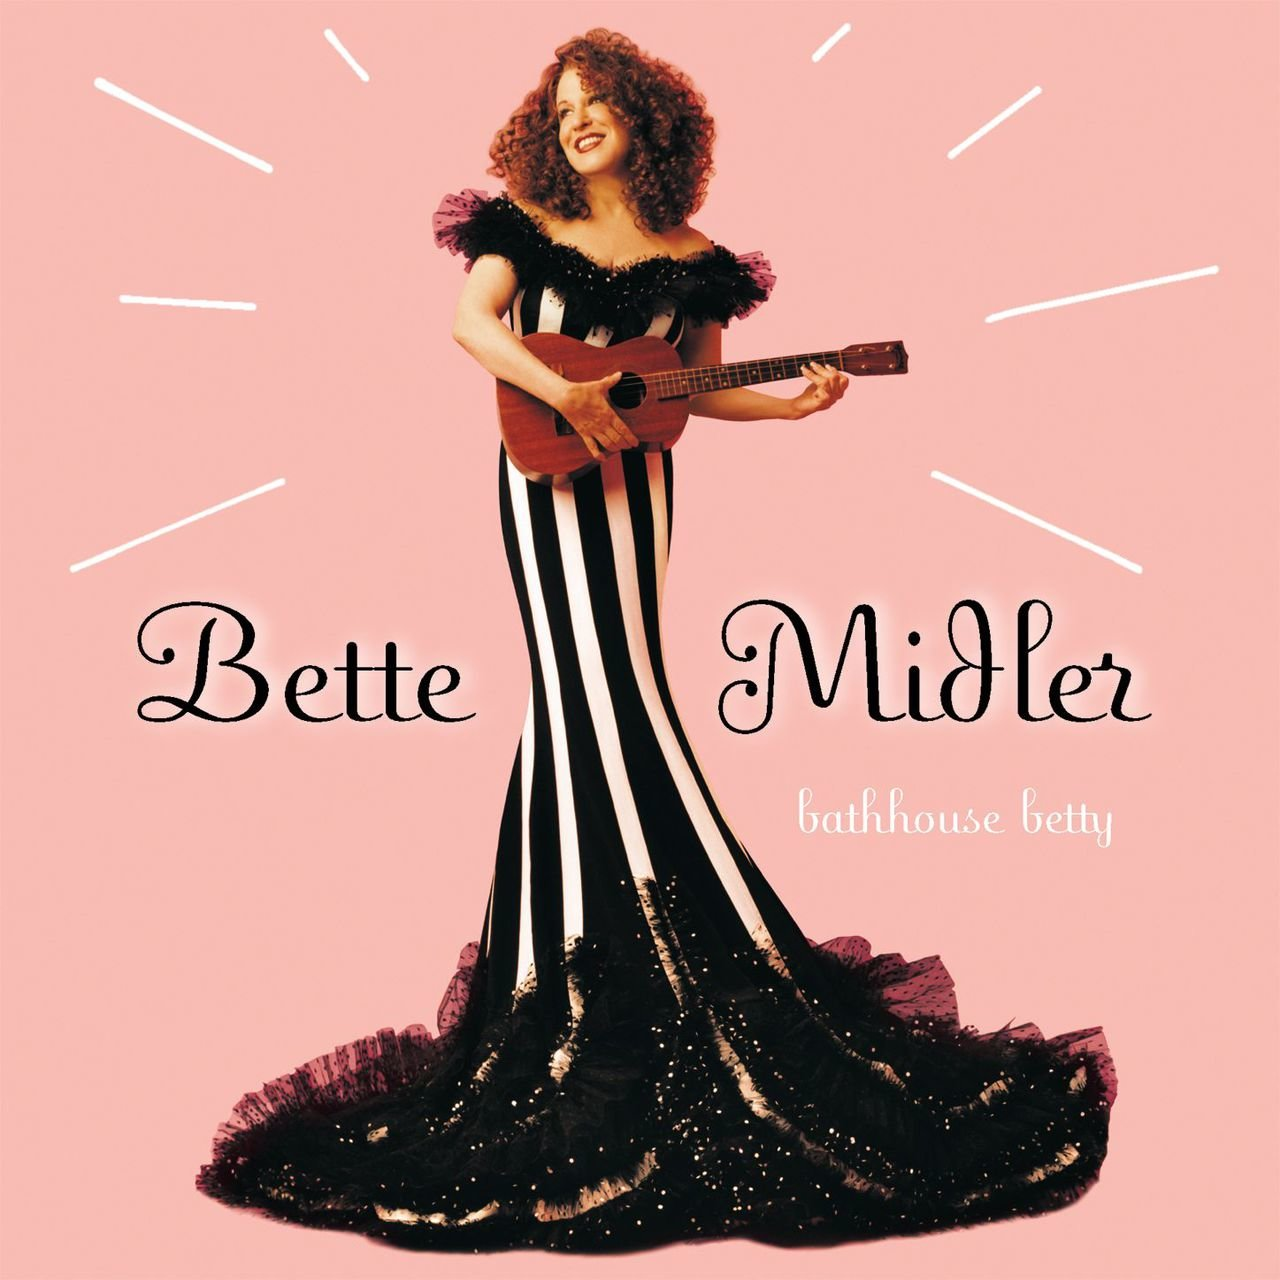 Bette Midler - Bathhouse Betty (1998)